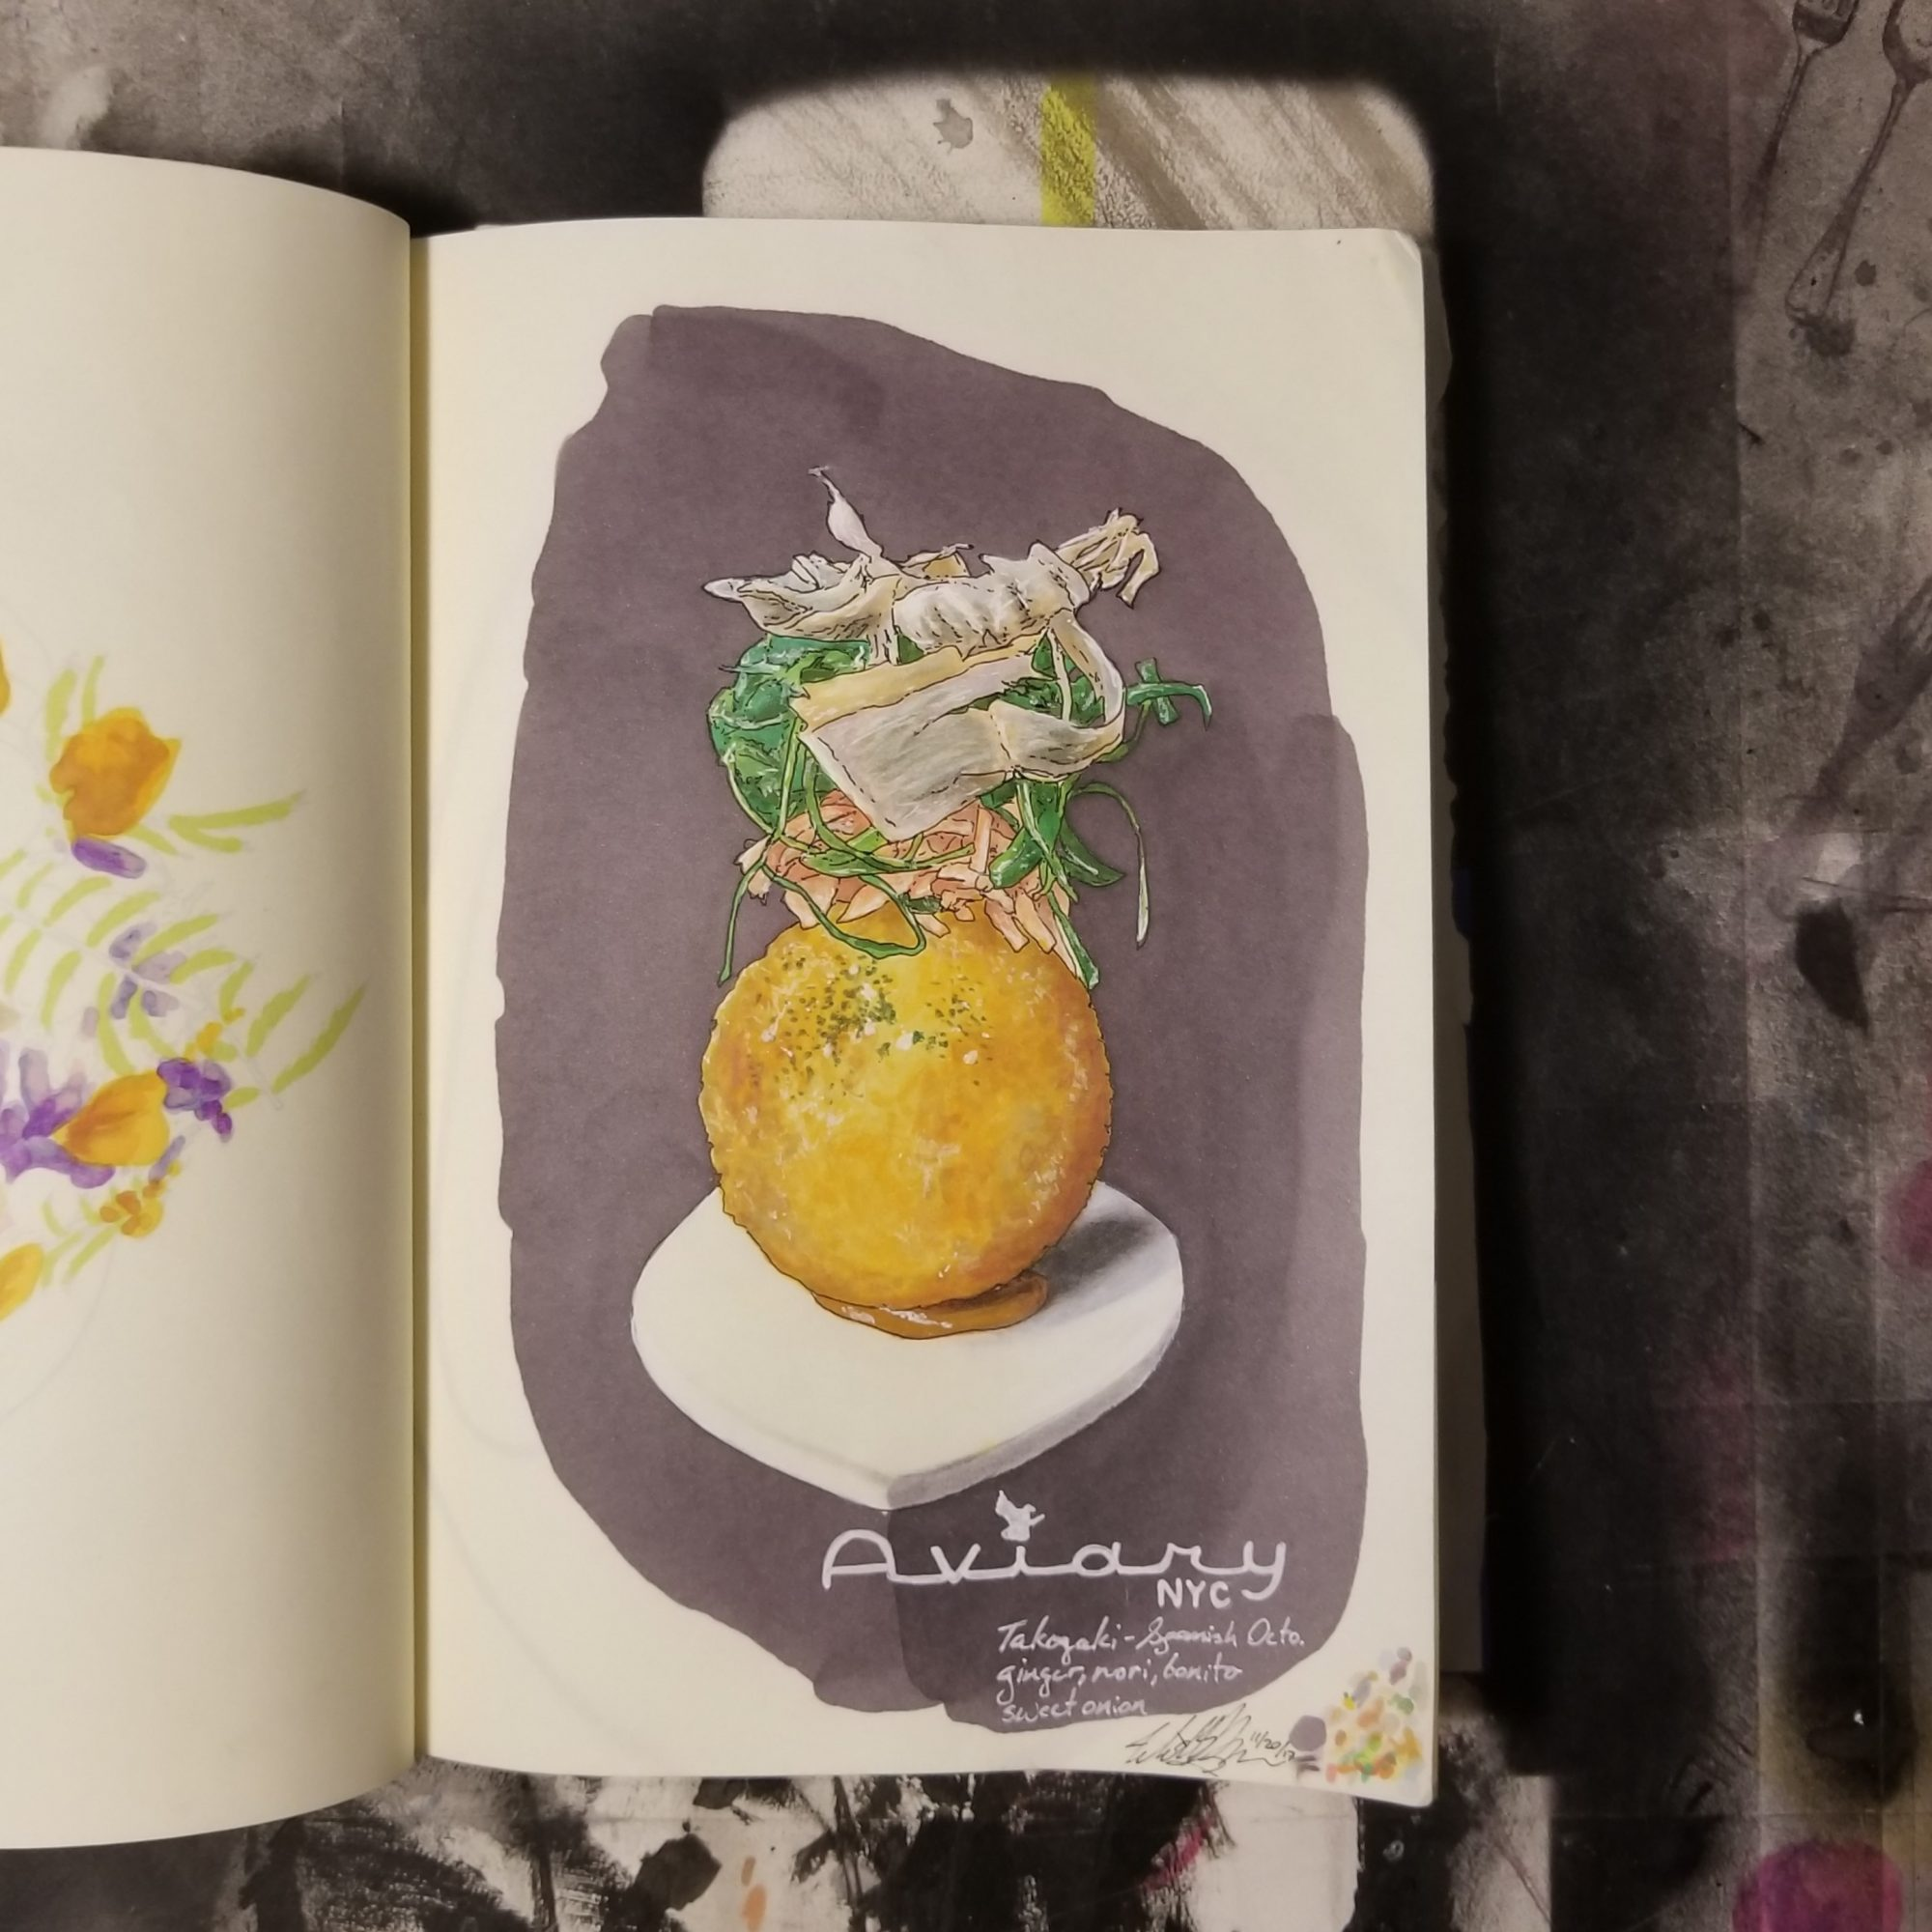 If You Follow One Chef on Instagram, This Chef-Turned-Illustrator Should Be It